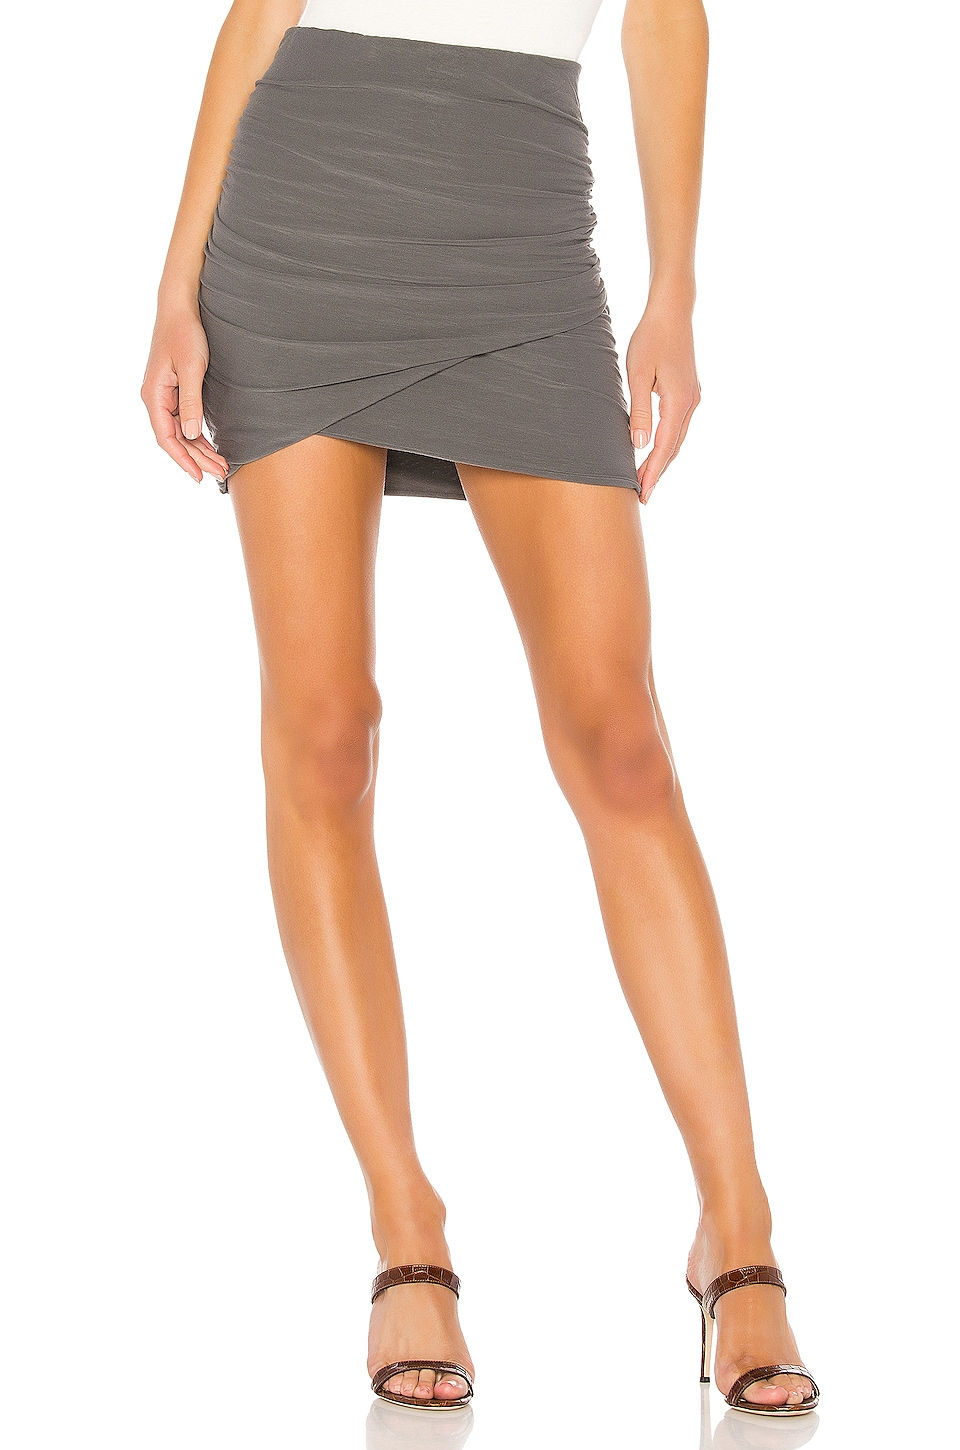 James Perse Wrap Mini Skirt in Charcoal